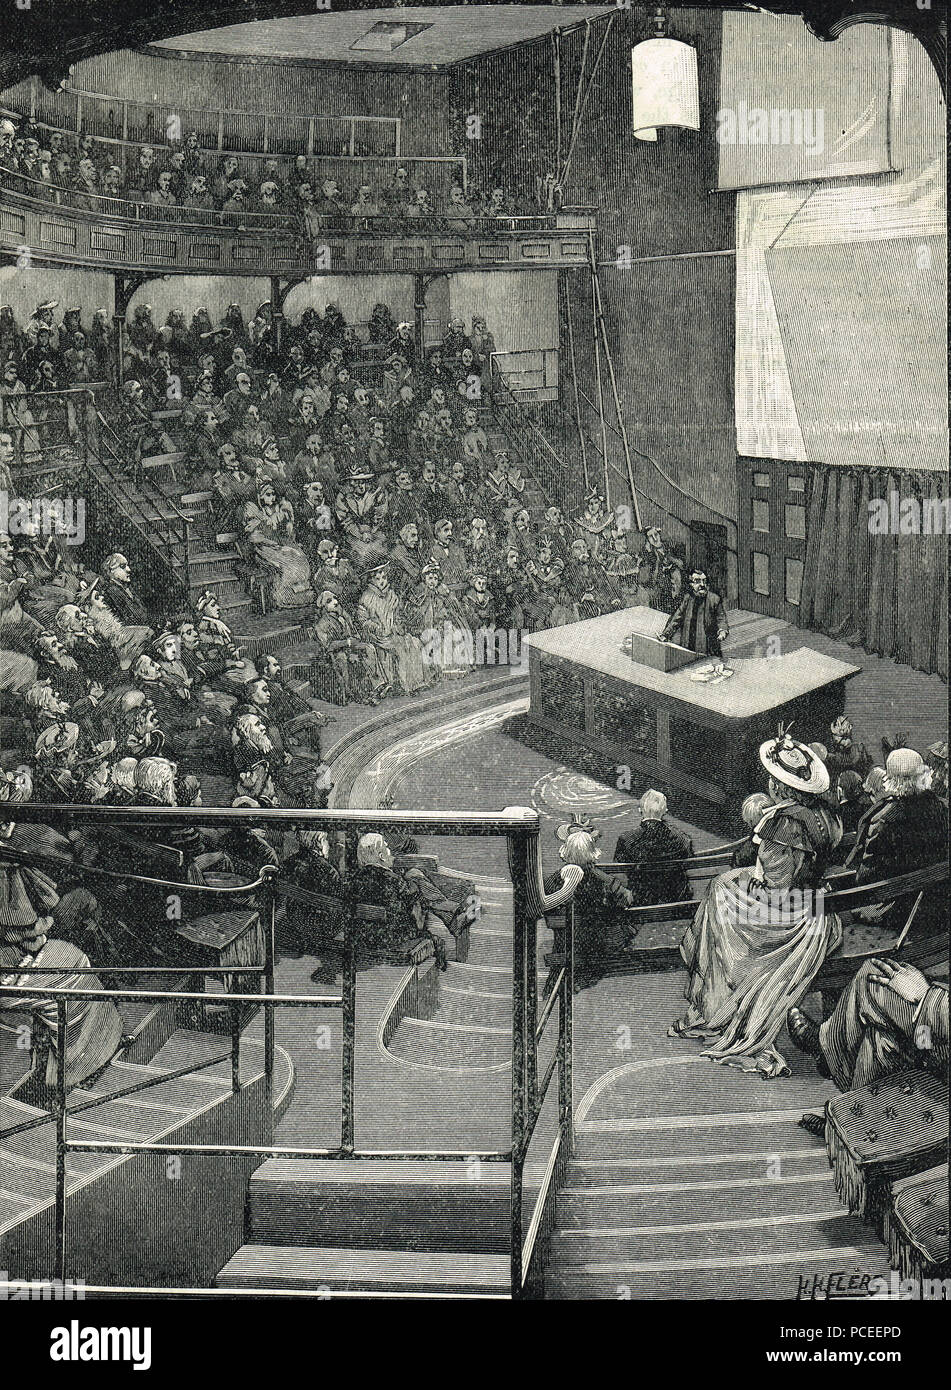 Lecture room of The Royal Institution of Great Britain in the 19th century - Stock Image